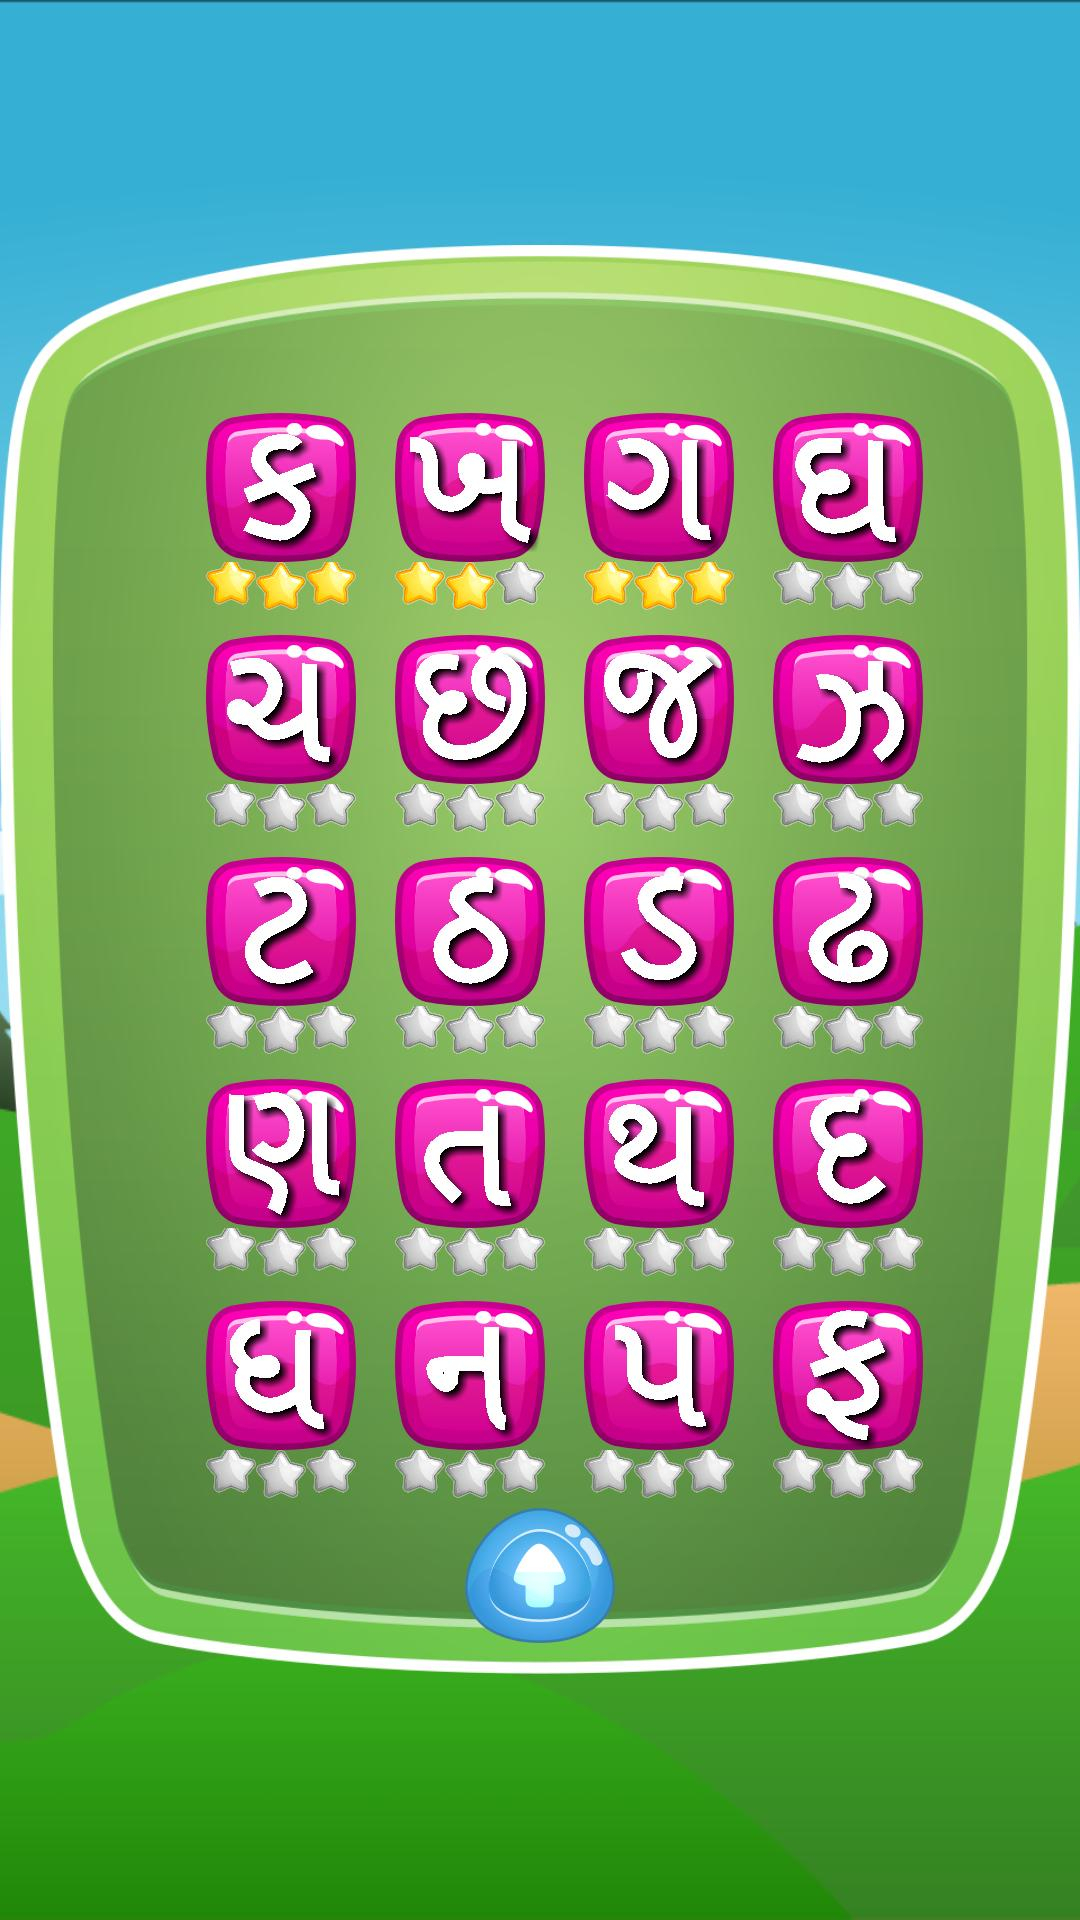 Write Gujarati Letters For Android - Apk Download inside Writing Practice Of Gujarati Letters By Tracing